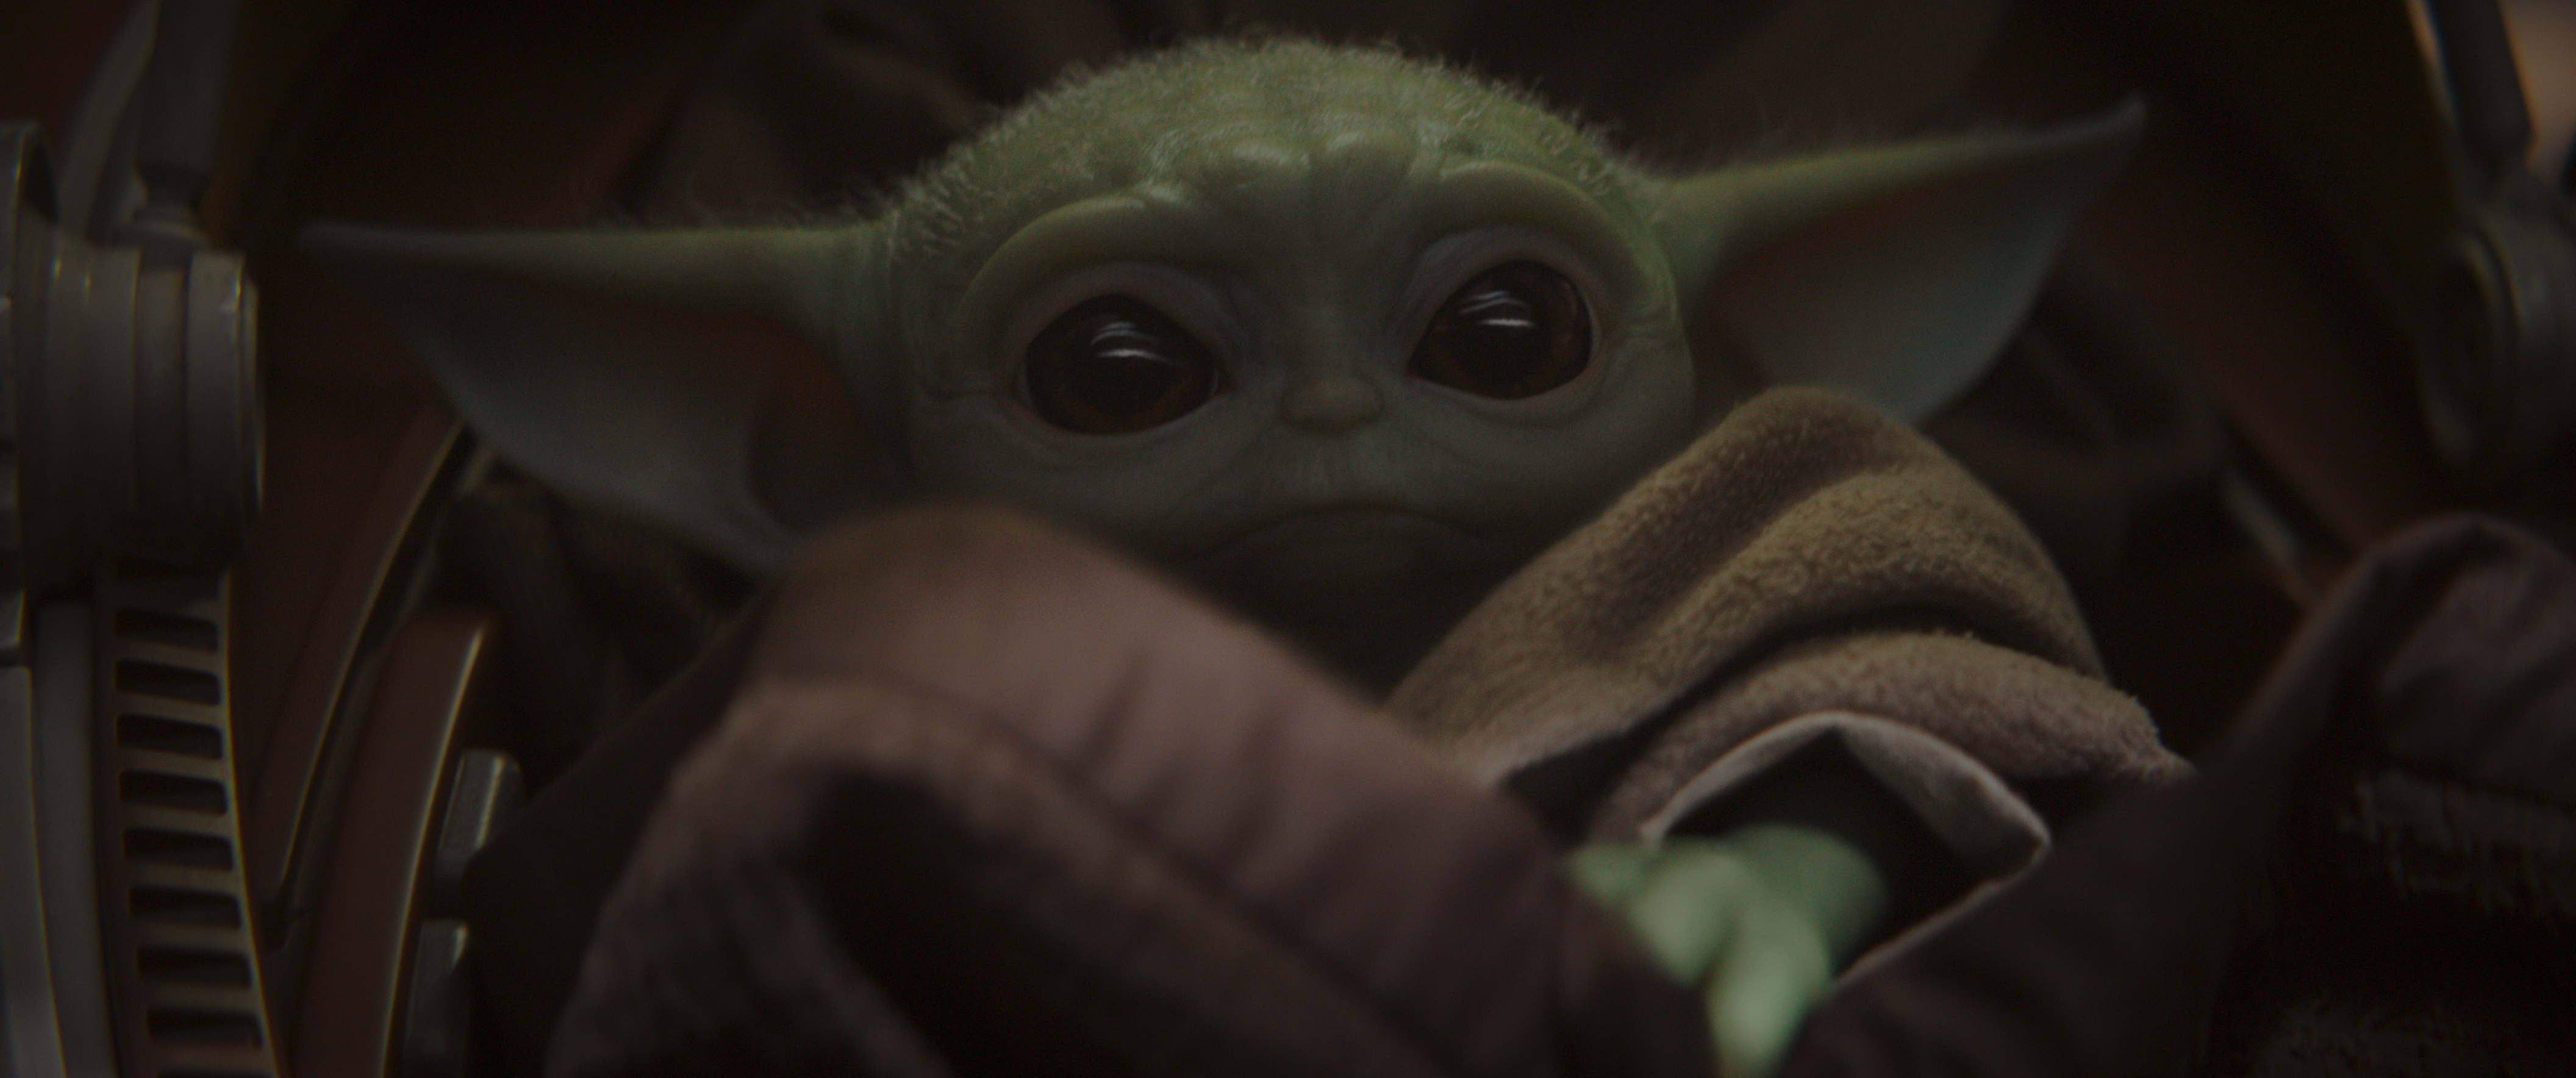 Baby Yoda  has emerged as one of the biggest viral stars of the new Disney+ show The Mandalorian. Toys will not be available until February.